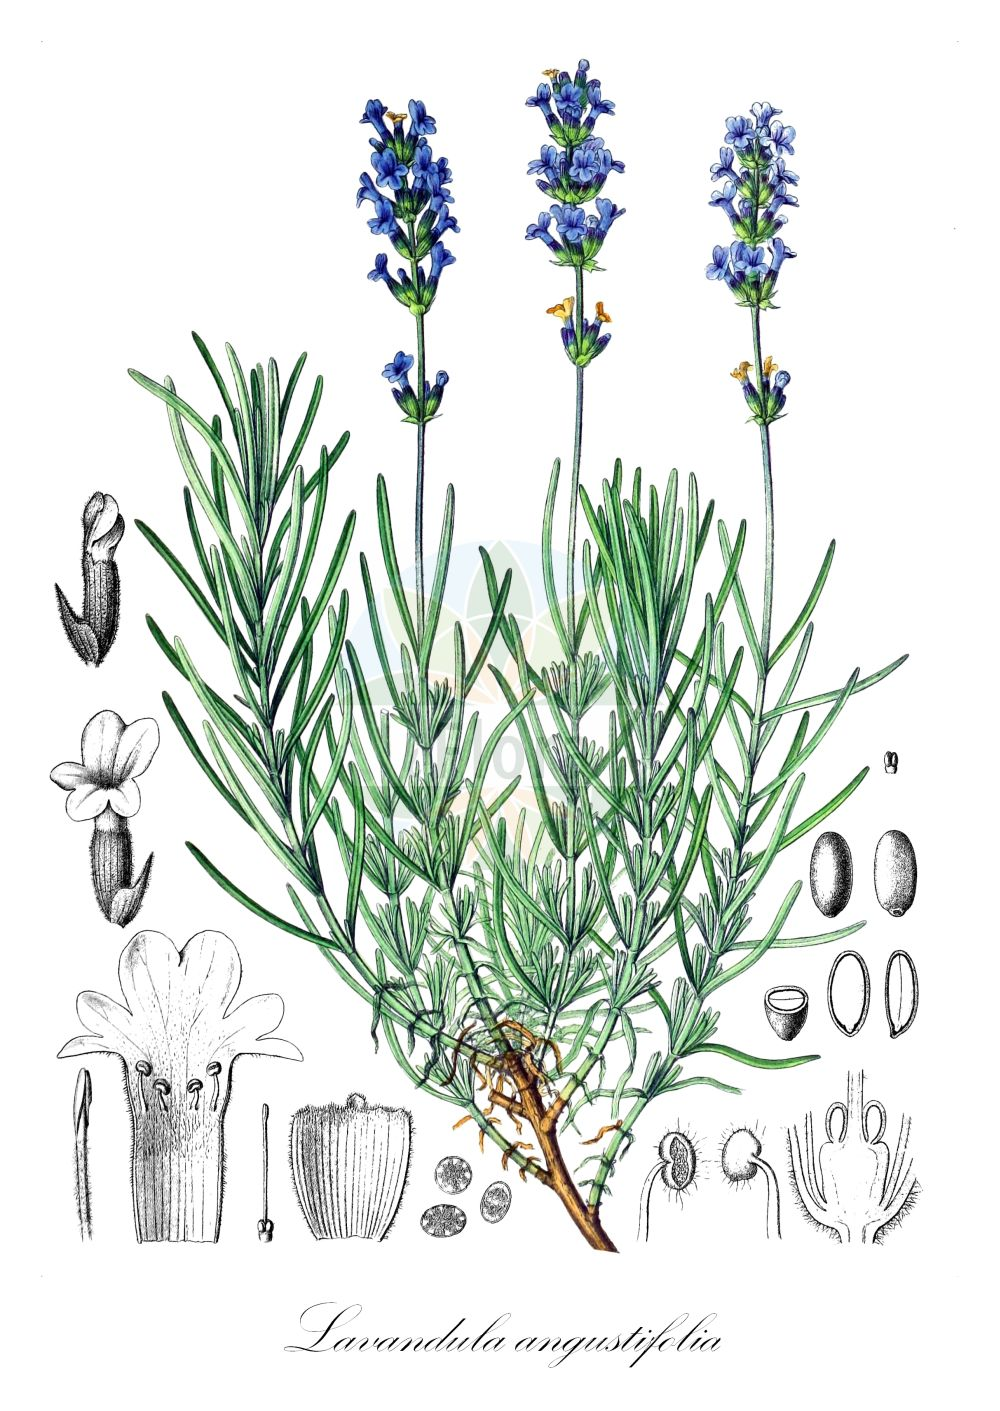 Historische Abbildung von Lavandula angustifolia (Echter Lavendel - Garden Lavender). ---- Historical Drawing of Lavandula angustifolia (Echter Lavendel - Garden Lavender).(Lavandula angustifolia,Echter Lavendel,Garden Lavender,Schmalblatt-Lavendel,Schmalblaettriger Lavendel,Common Lavender,English Lavender,Lavender,French Lavender,Lavandula,Lavendel,Lavender,Lamiaceae,Lippenbluetengewaechse;Lippenbluetler,Nettle family,Berg & Schmidt (1894-1896))